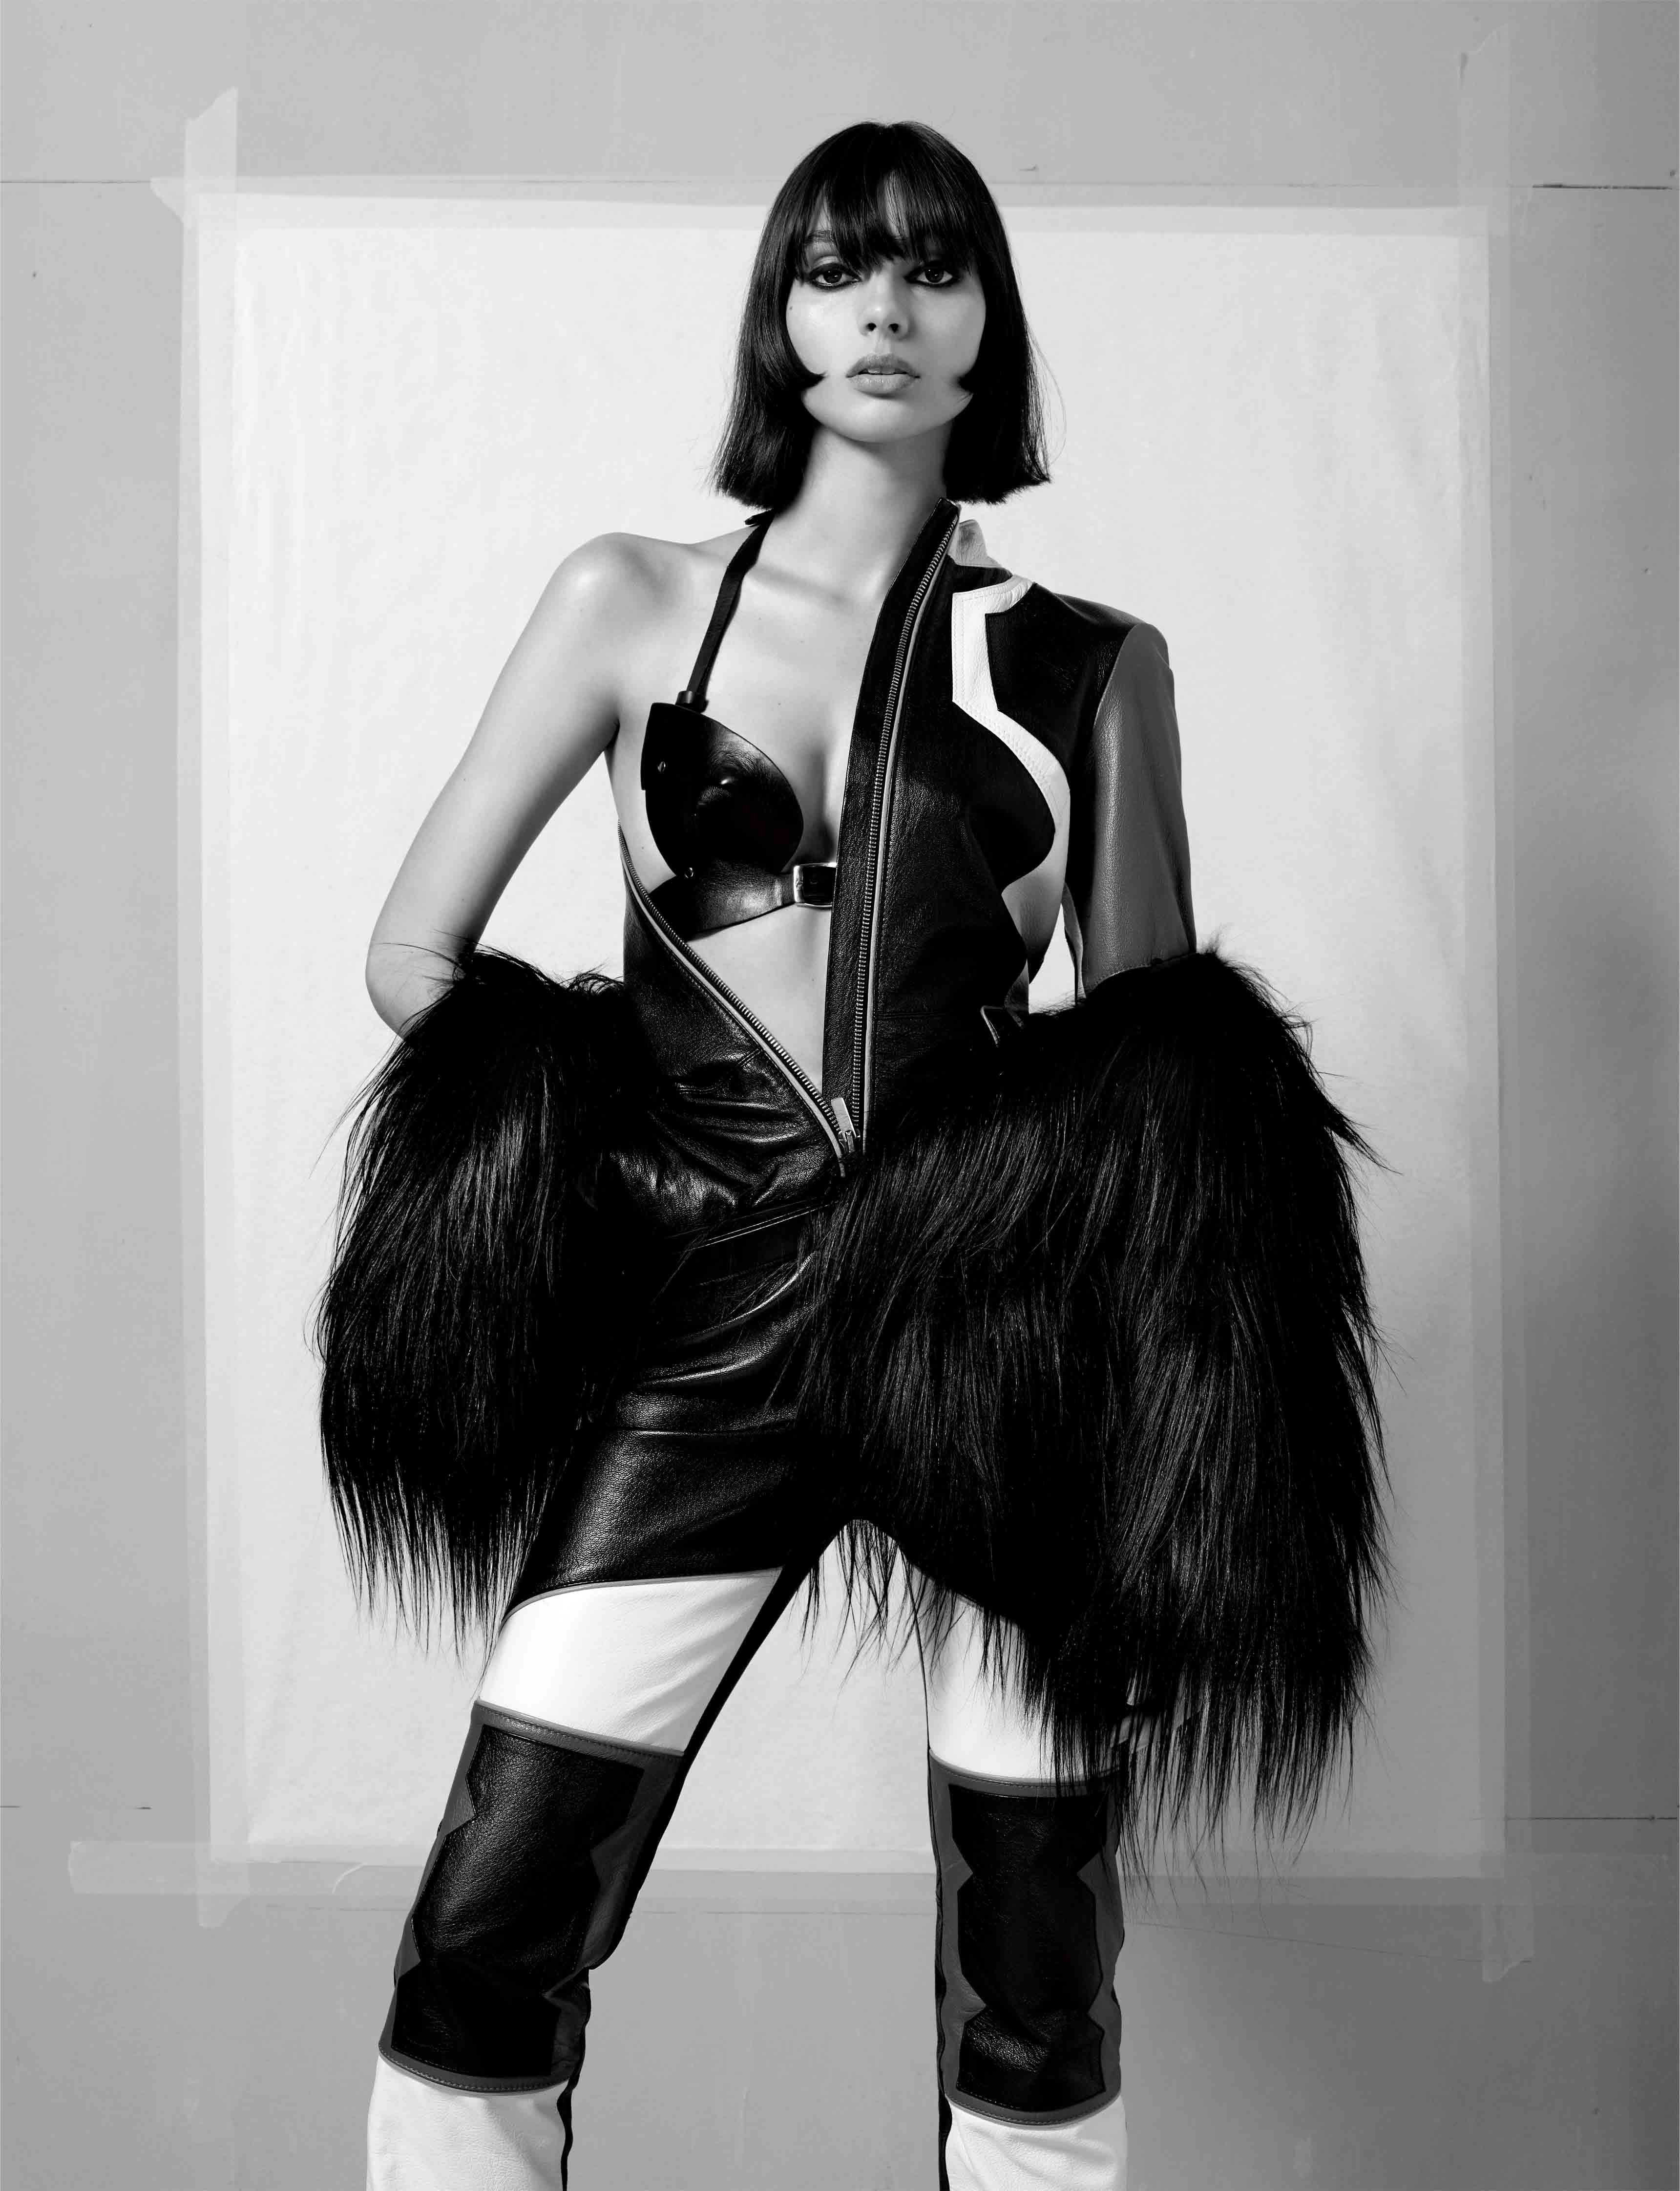 Leather slip with geometrical patterns and fur jacket, DIOR. Leather bra, ZANA BAYNE.